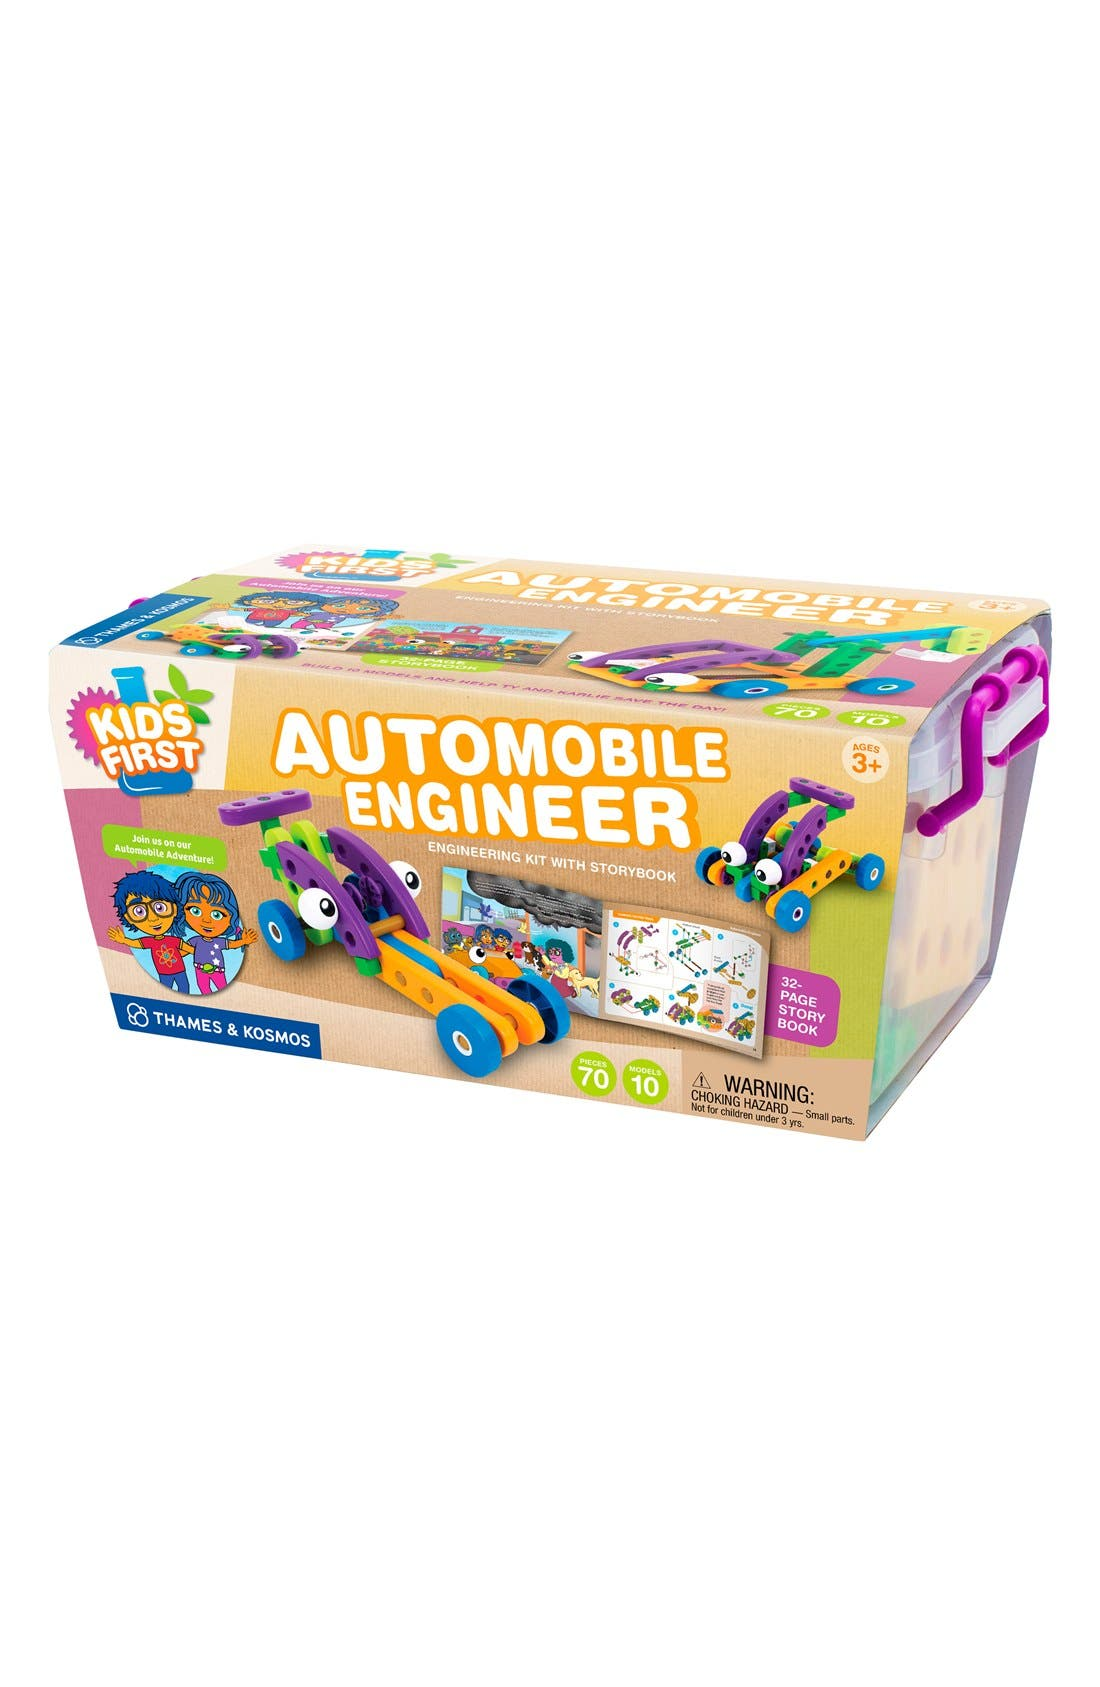 Thames & Kosmos 'Kids First - Automobile Engineer' Kit